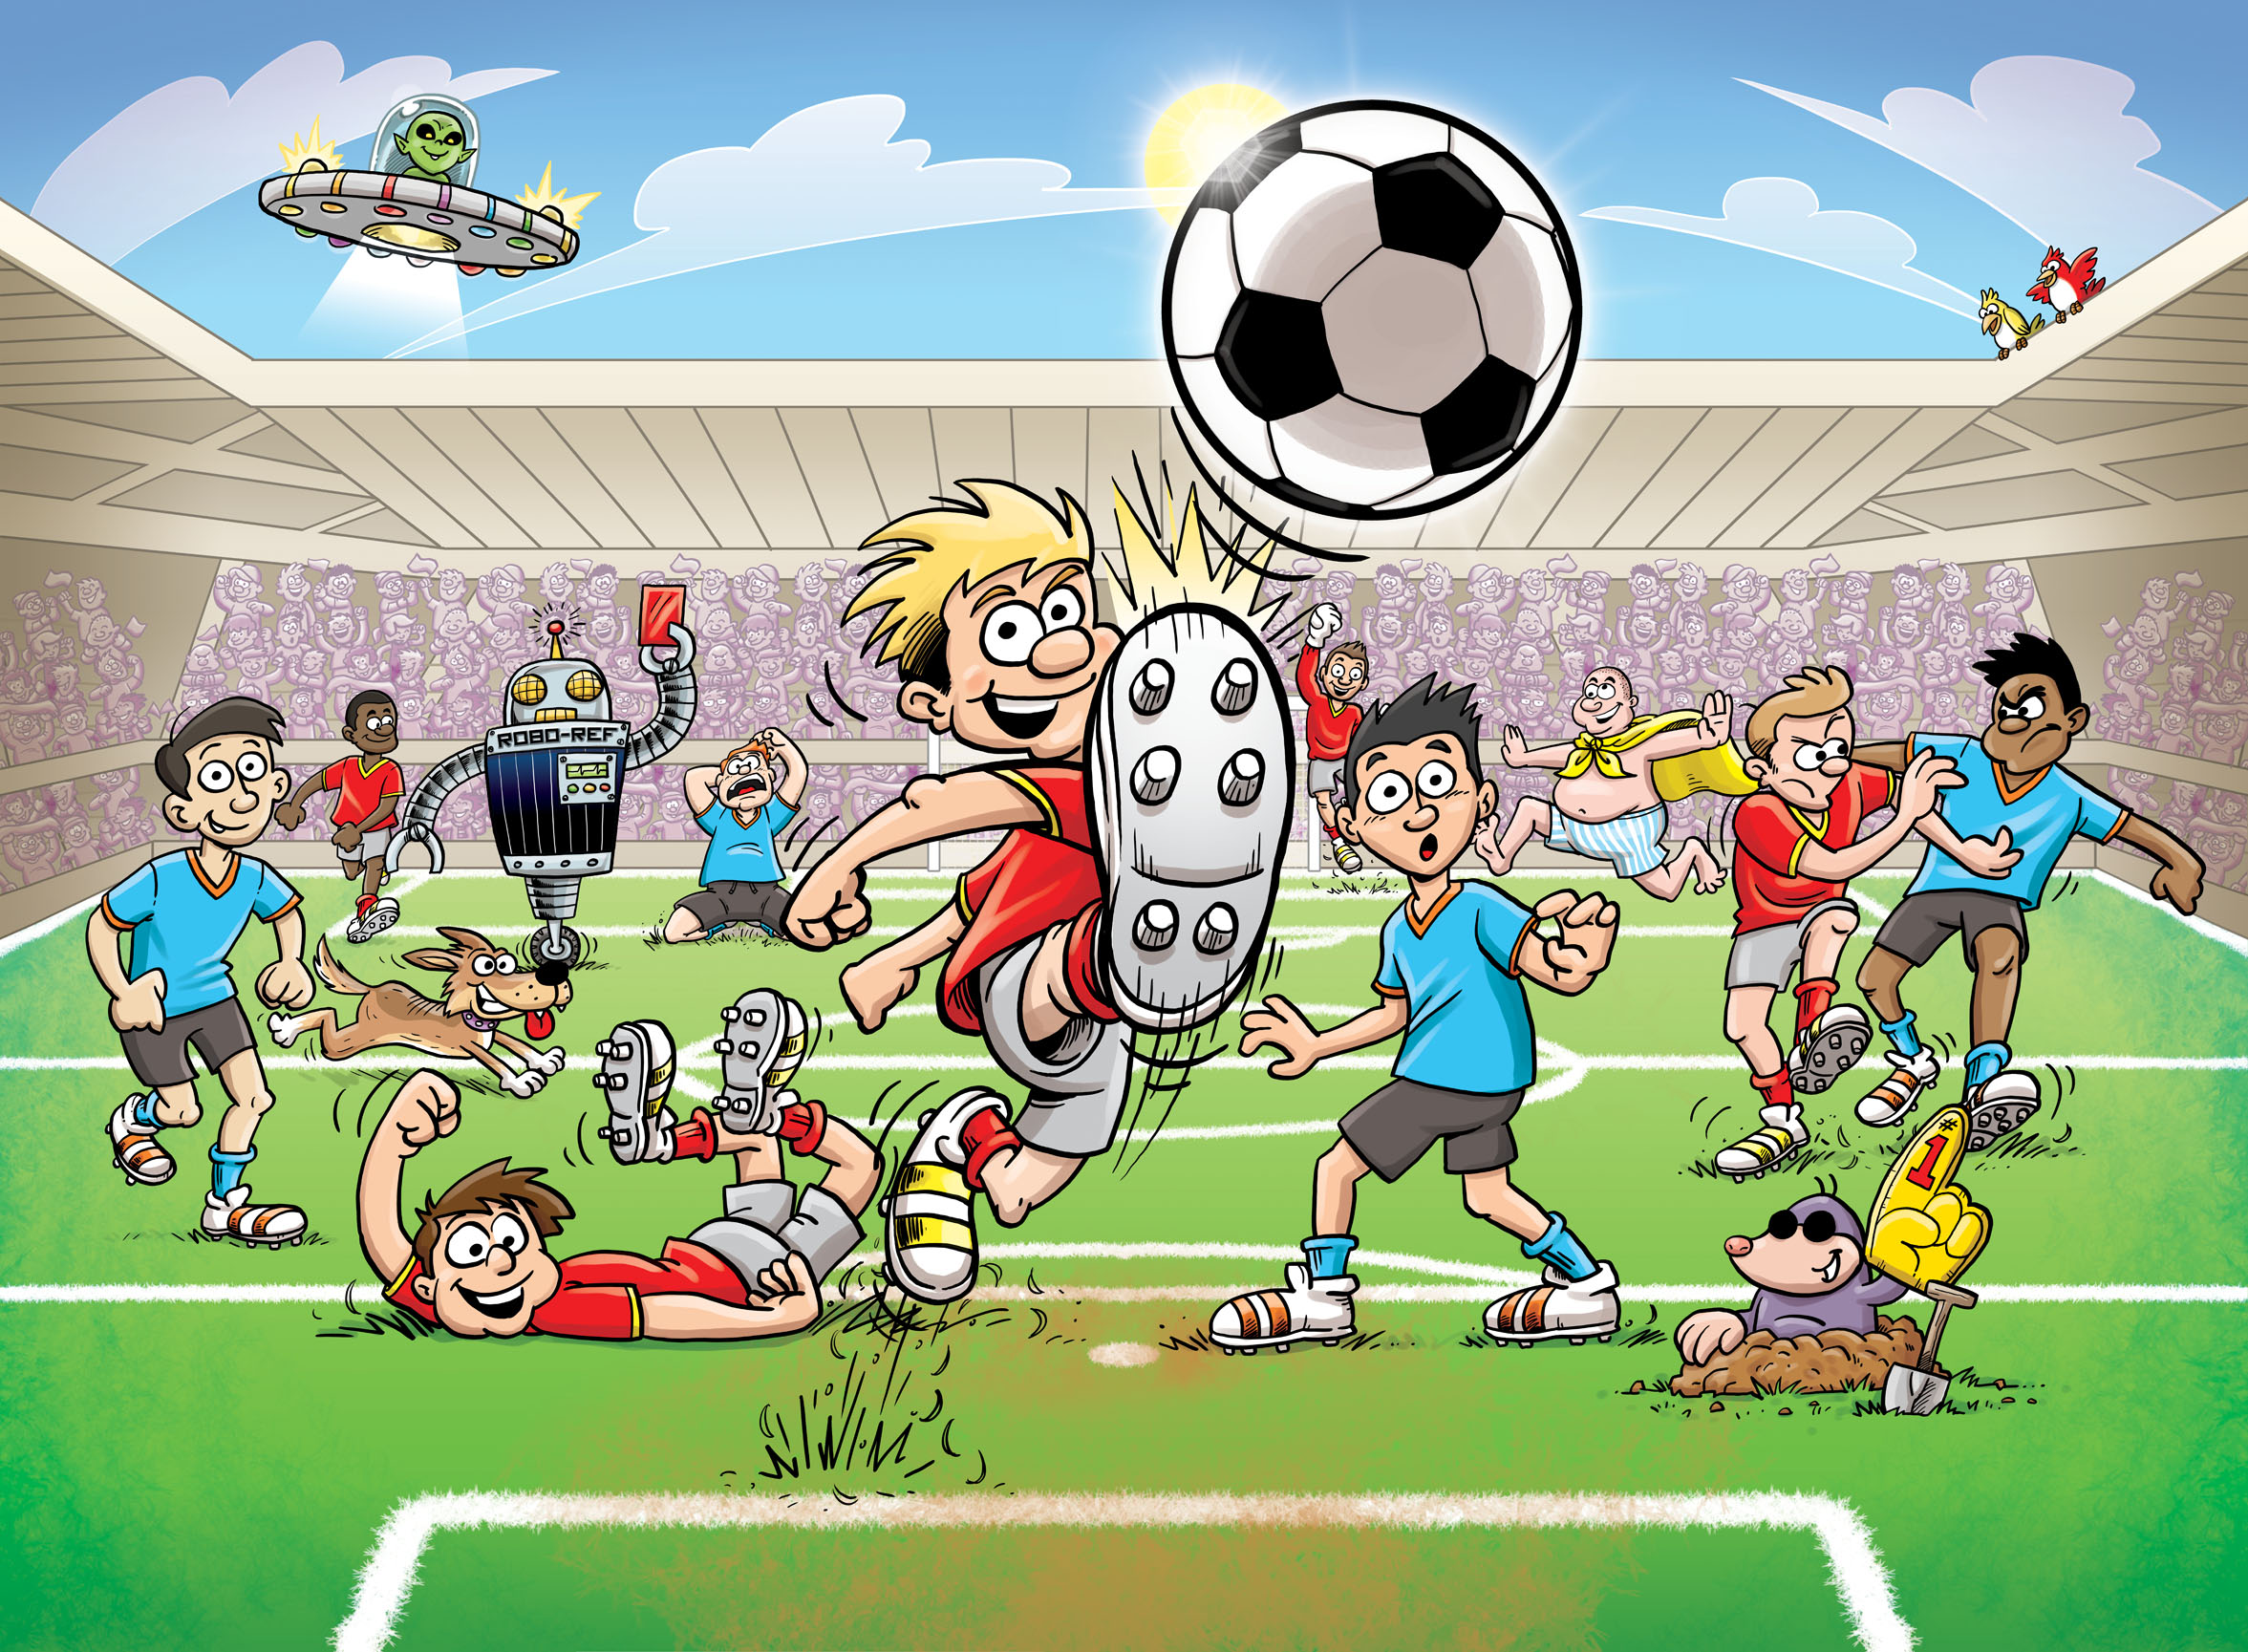 Buy Childrens Football Wallpaper Murals For £35.00 Per Sq M2 | Kids Bedroom  Wallpaper Ideas